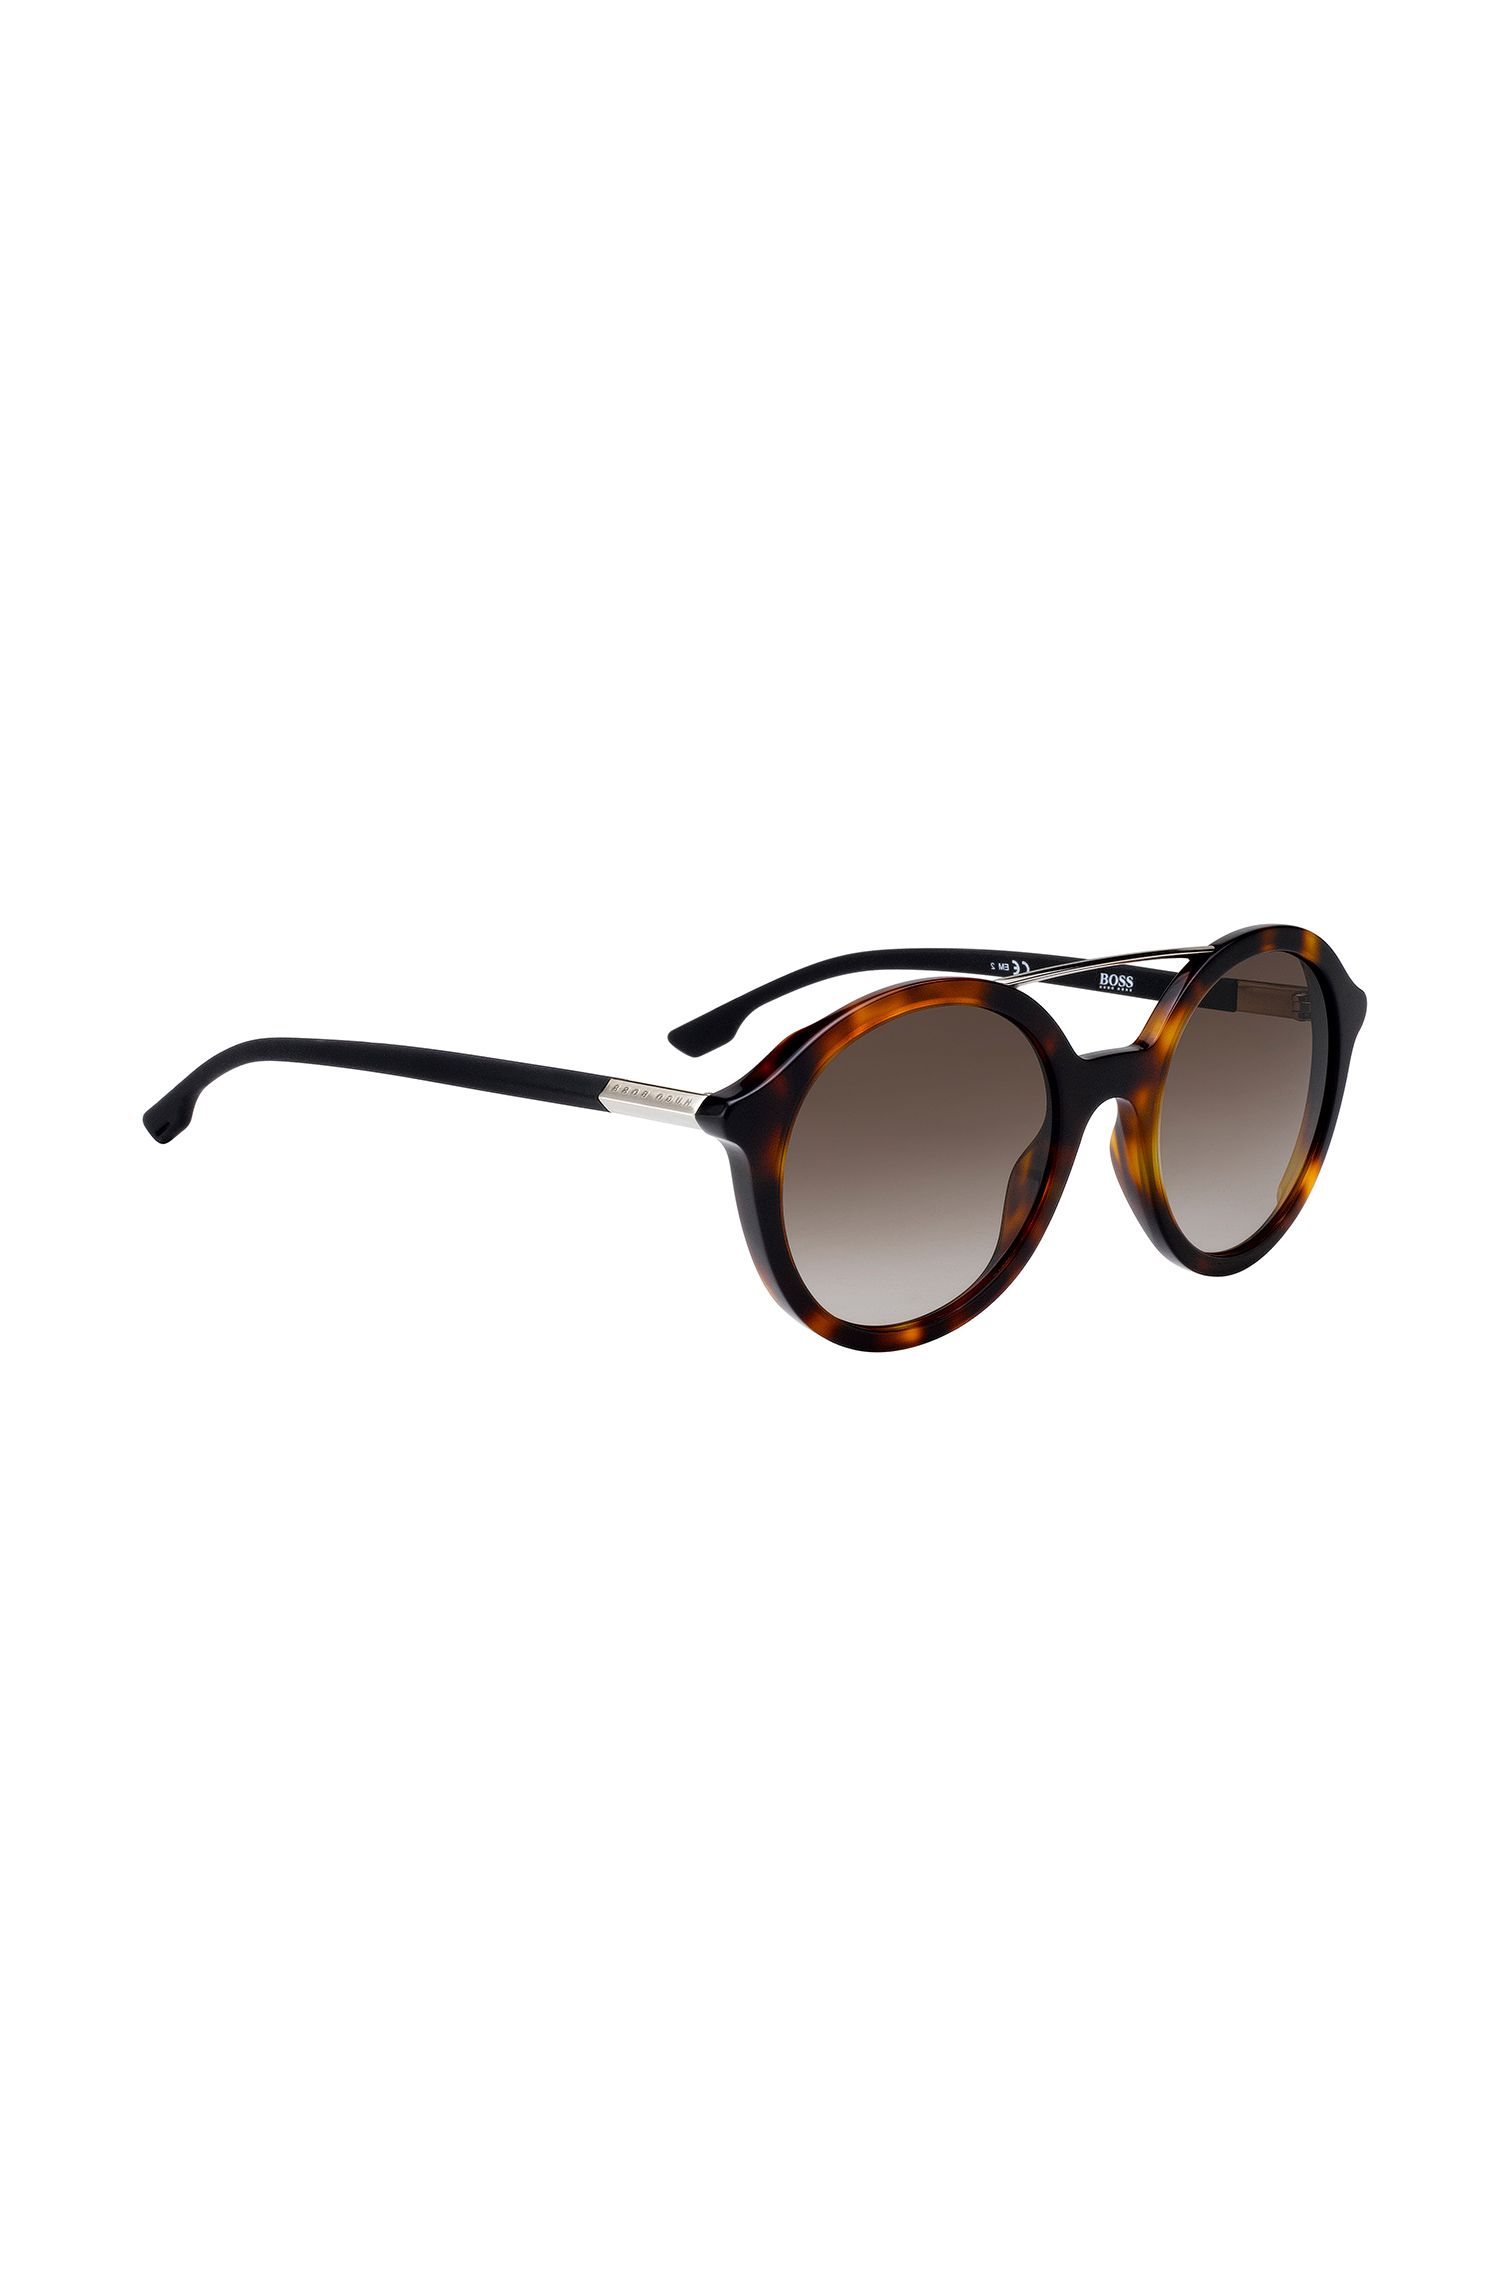 Double-bridge sunglasses with Havana-pattern frames